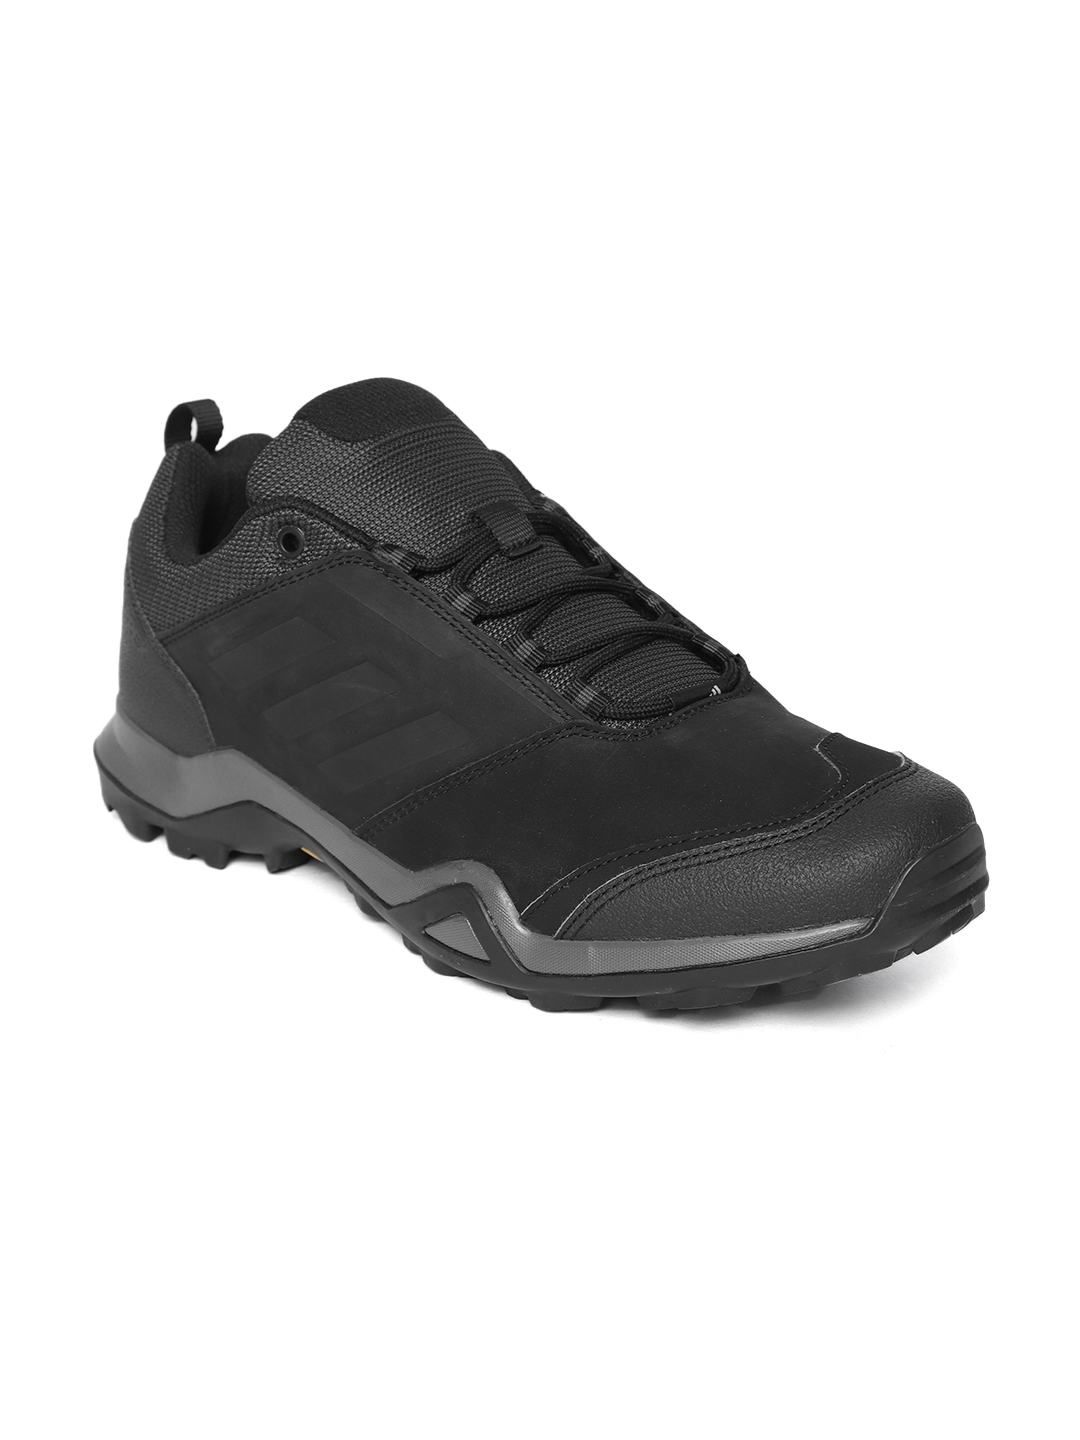 ed8104dd562d Buy ADIDAS Men Black Terrex Brushwood Outdoor Shoes - Sports Shoes ...